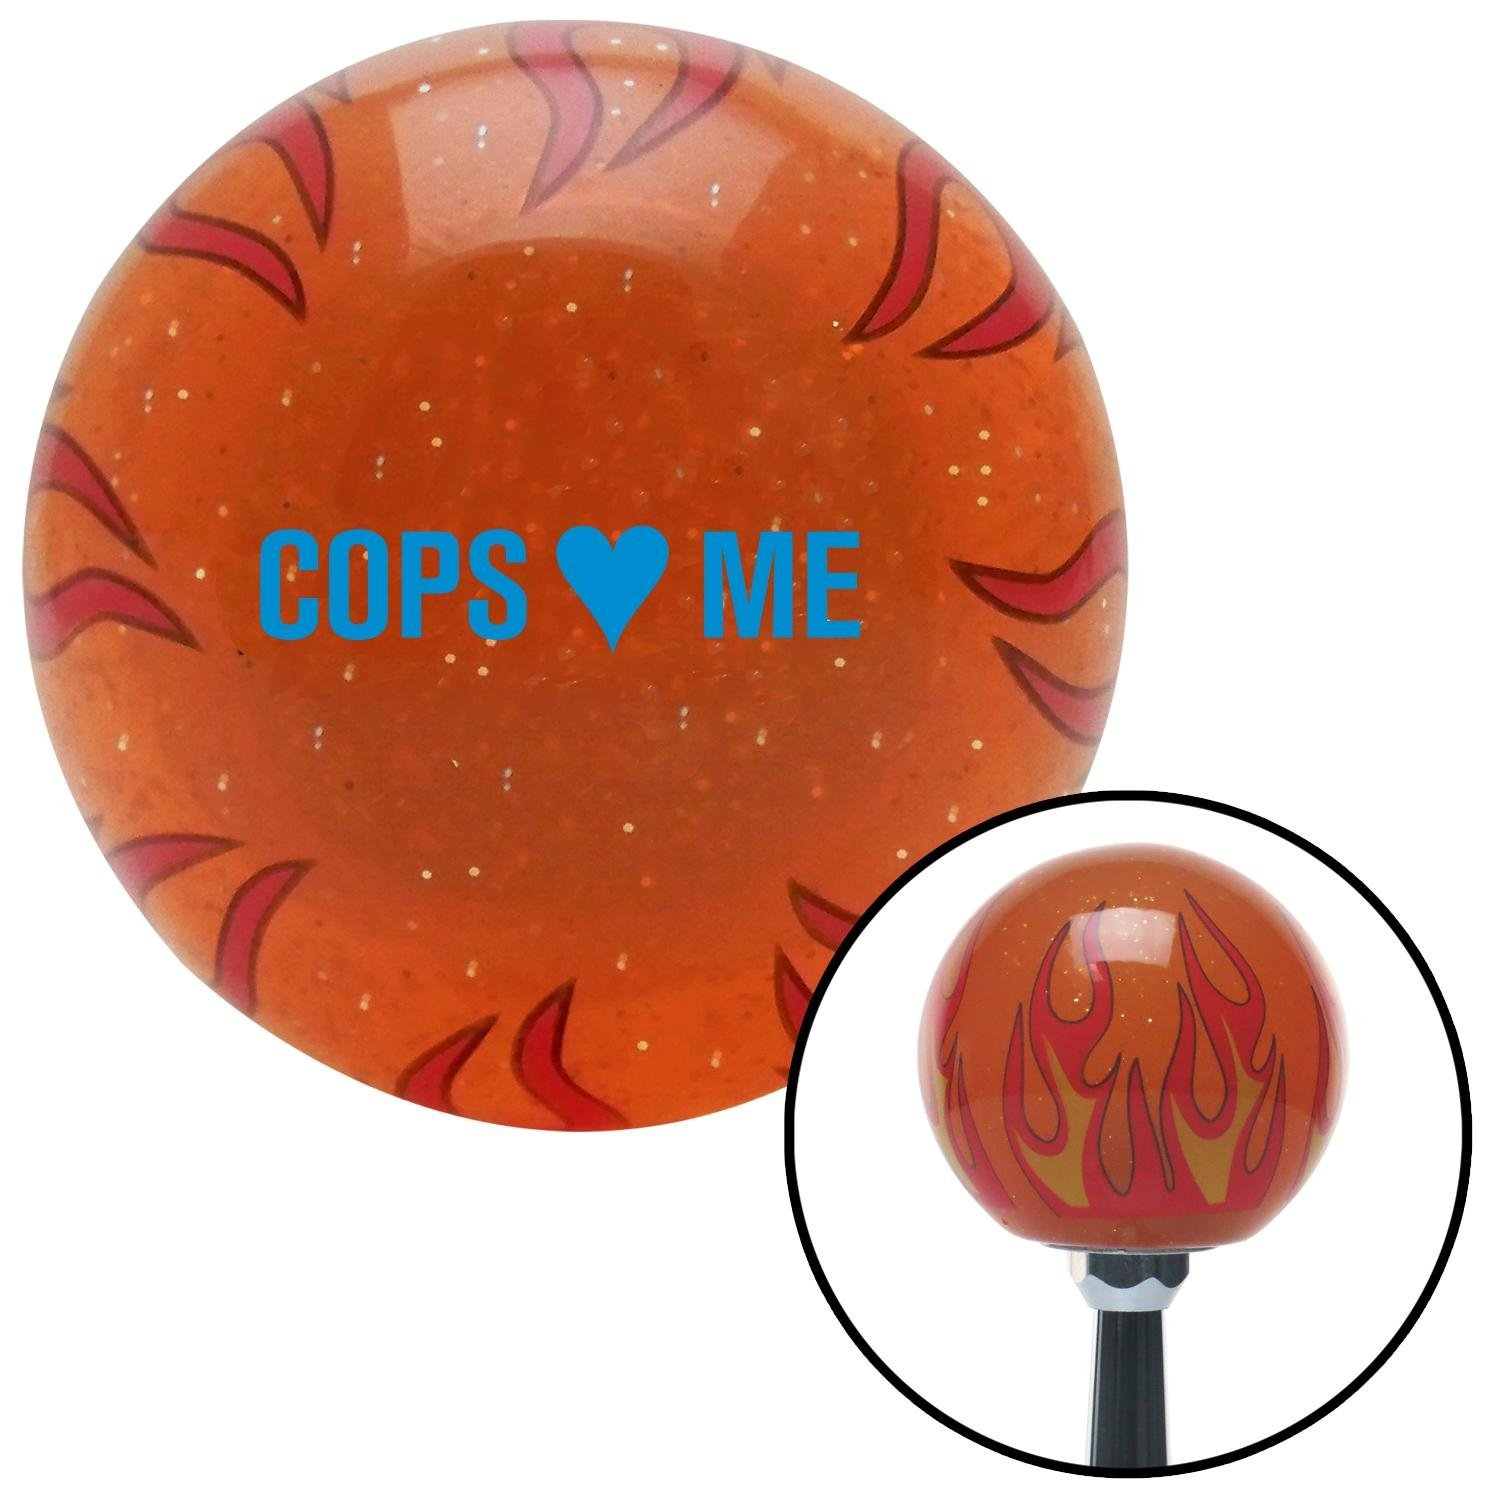 American Shifter 256474 Orange Flame Metal Flake Shift Knob with M16 x 1.5 Insert Blue Cops 3 Me